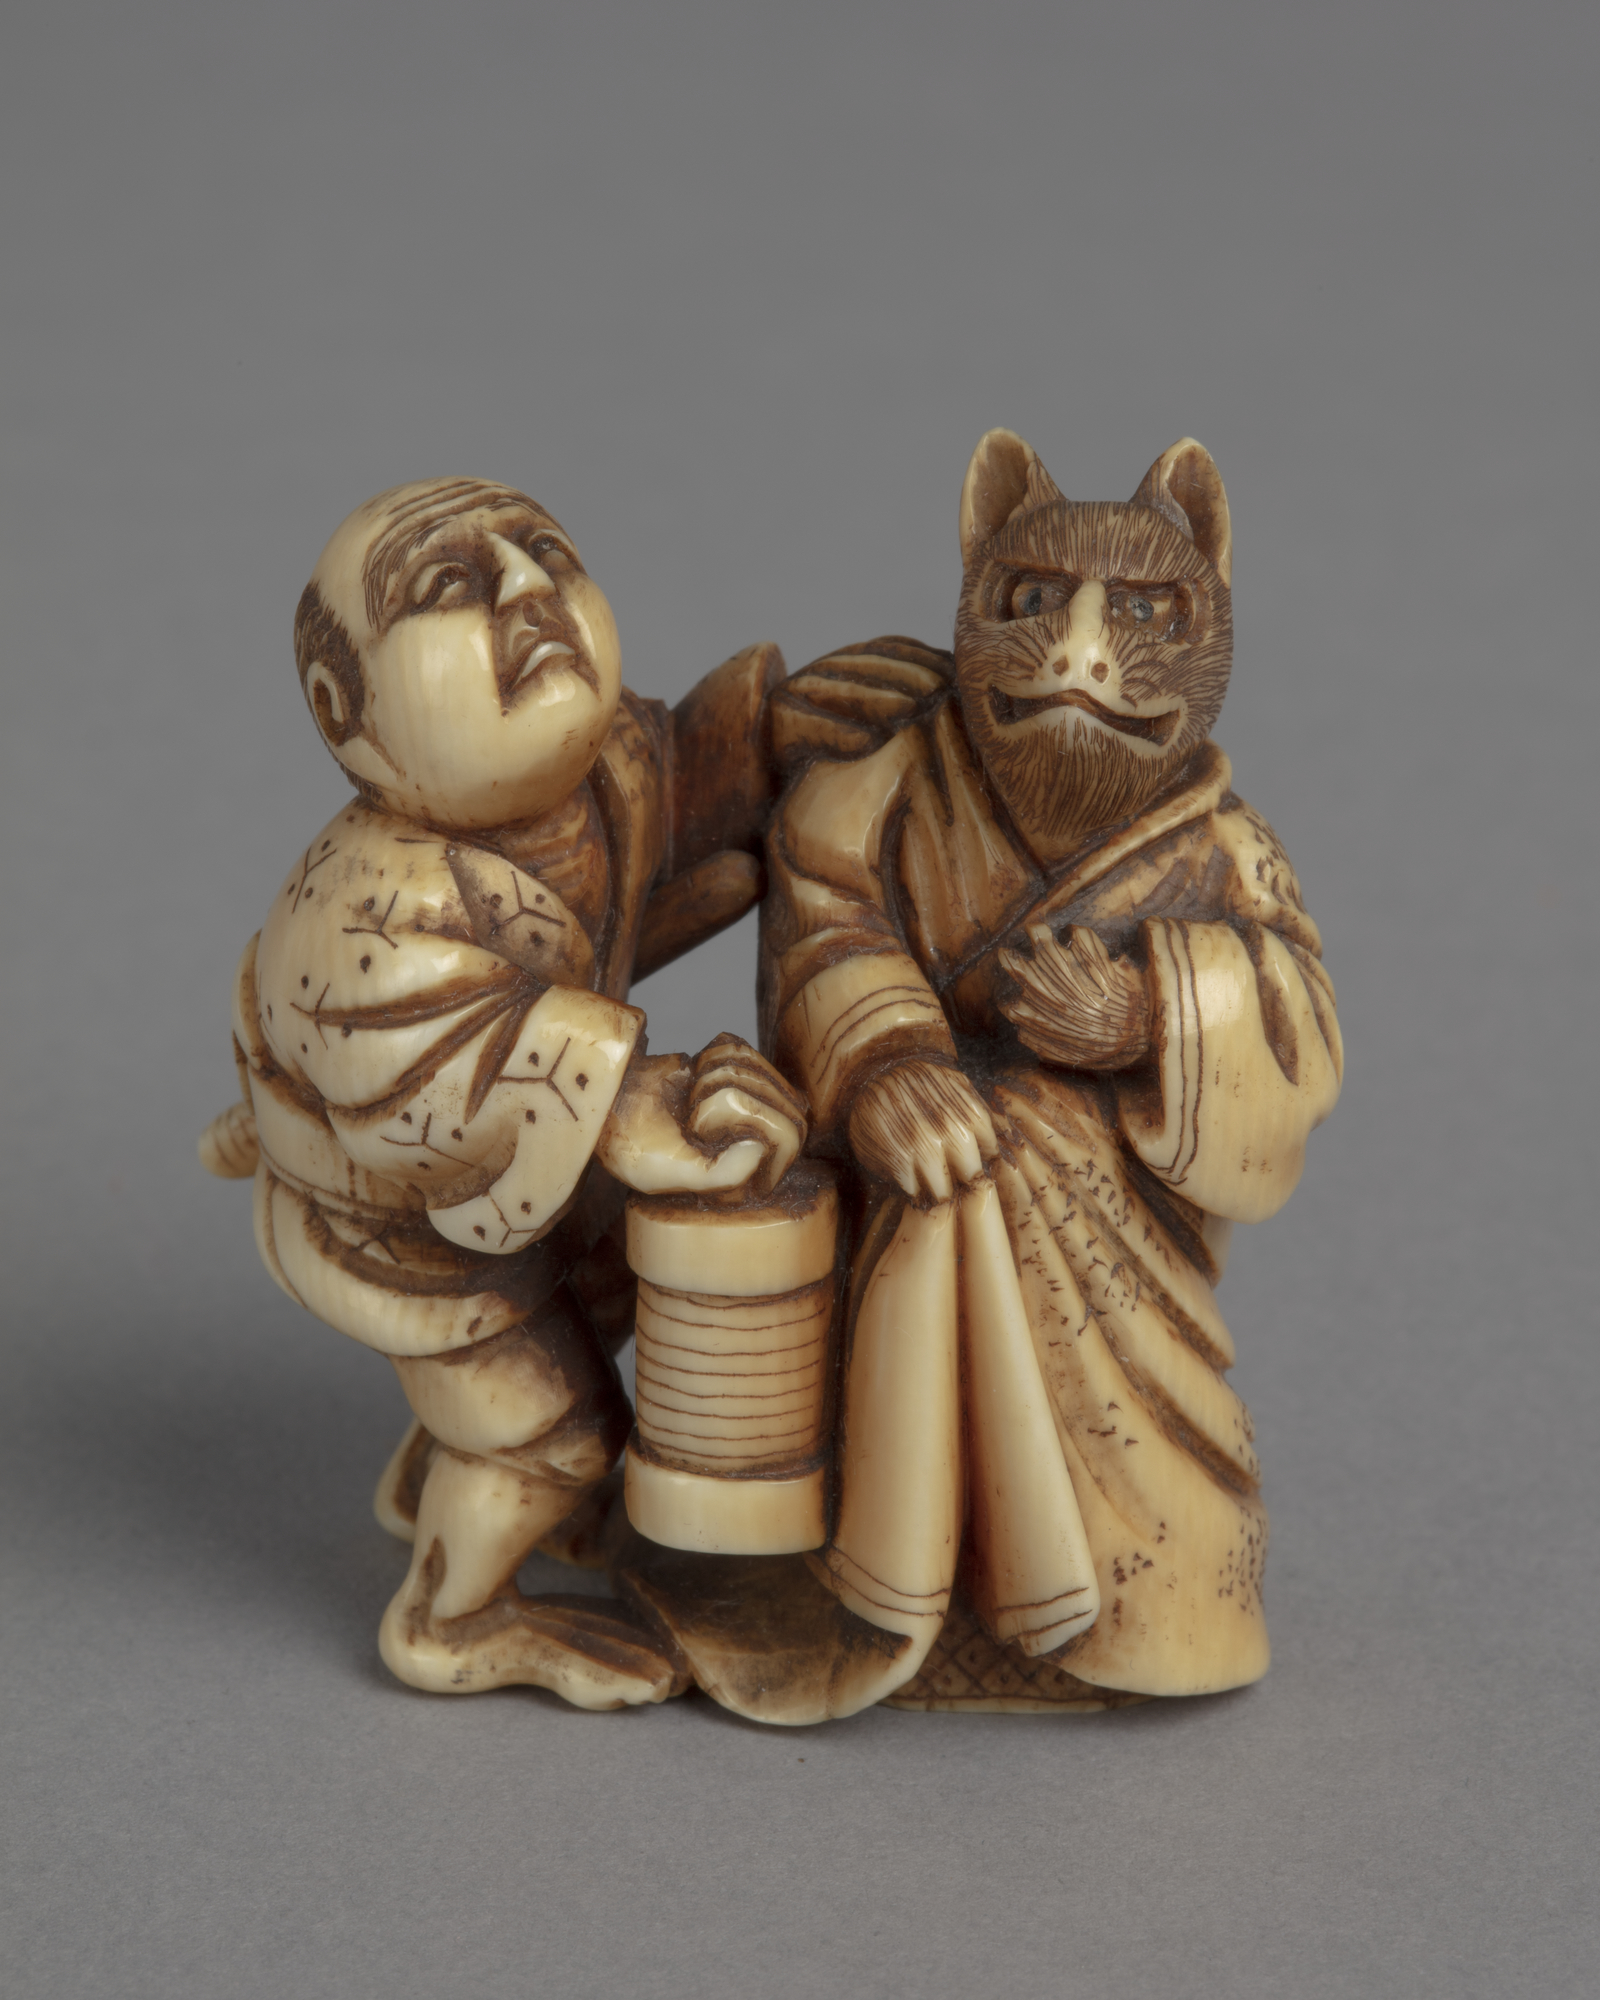 A Japanese ivory netsuke of a kitsune fox dressed in a kimono standing to the left of a man who carries a lantern.